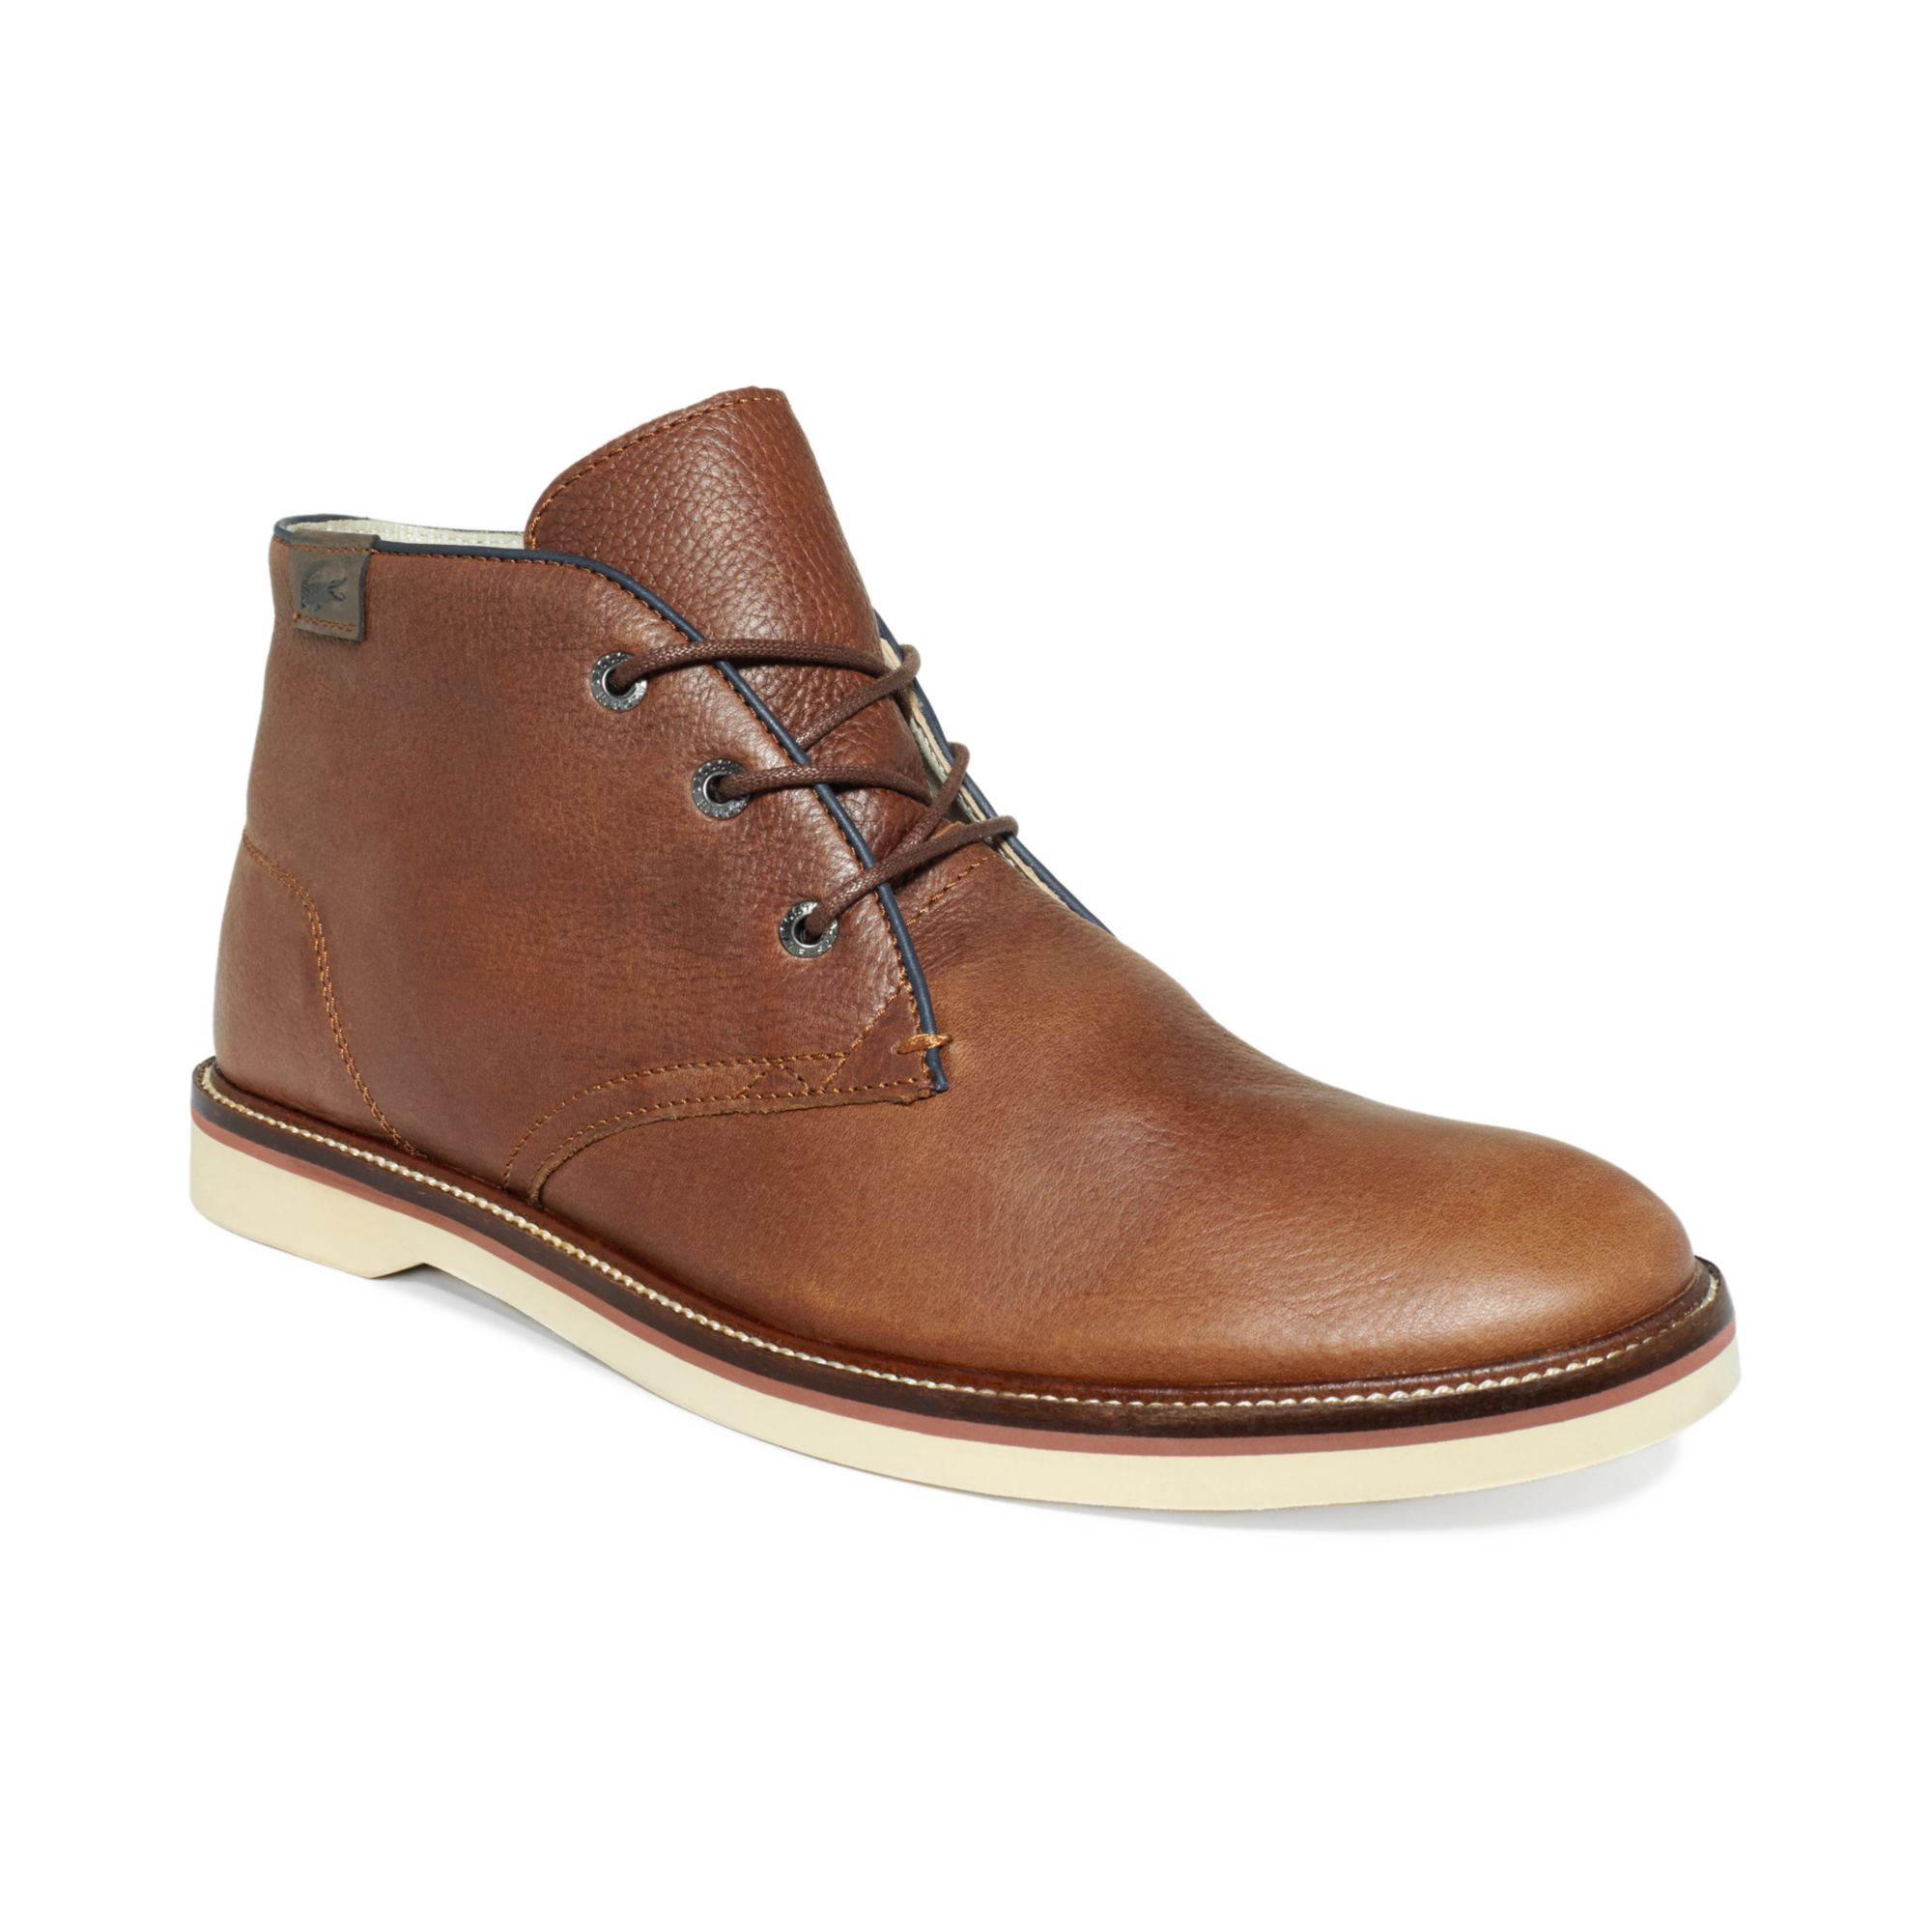 f42d752d8d2258 Lyst - Lacoste Sherbrooke Hi Boots in Brown for Men